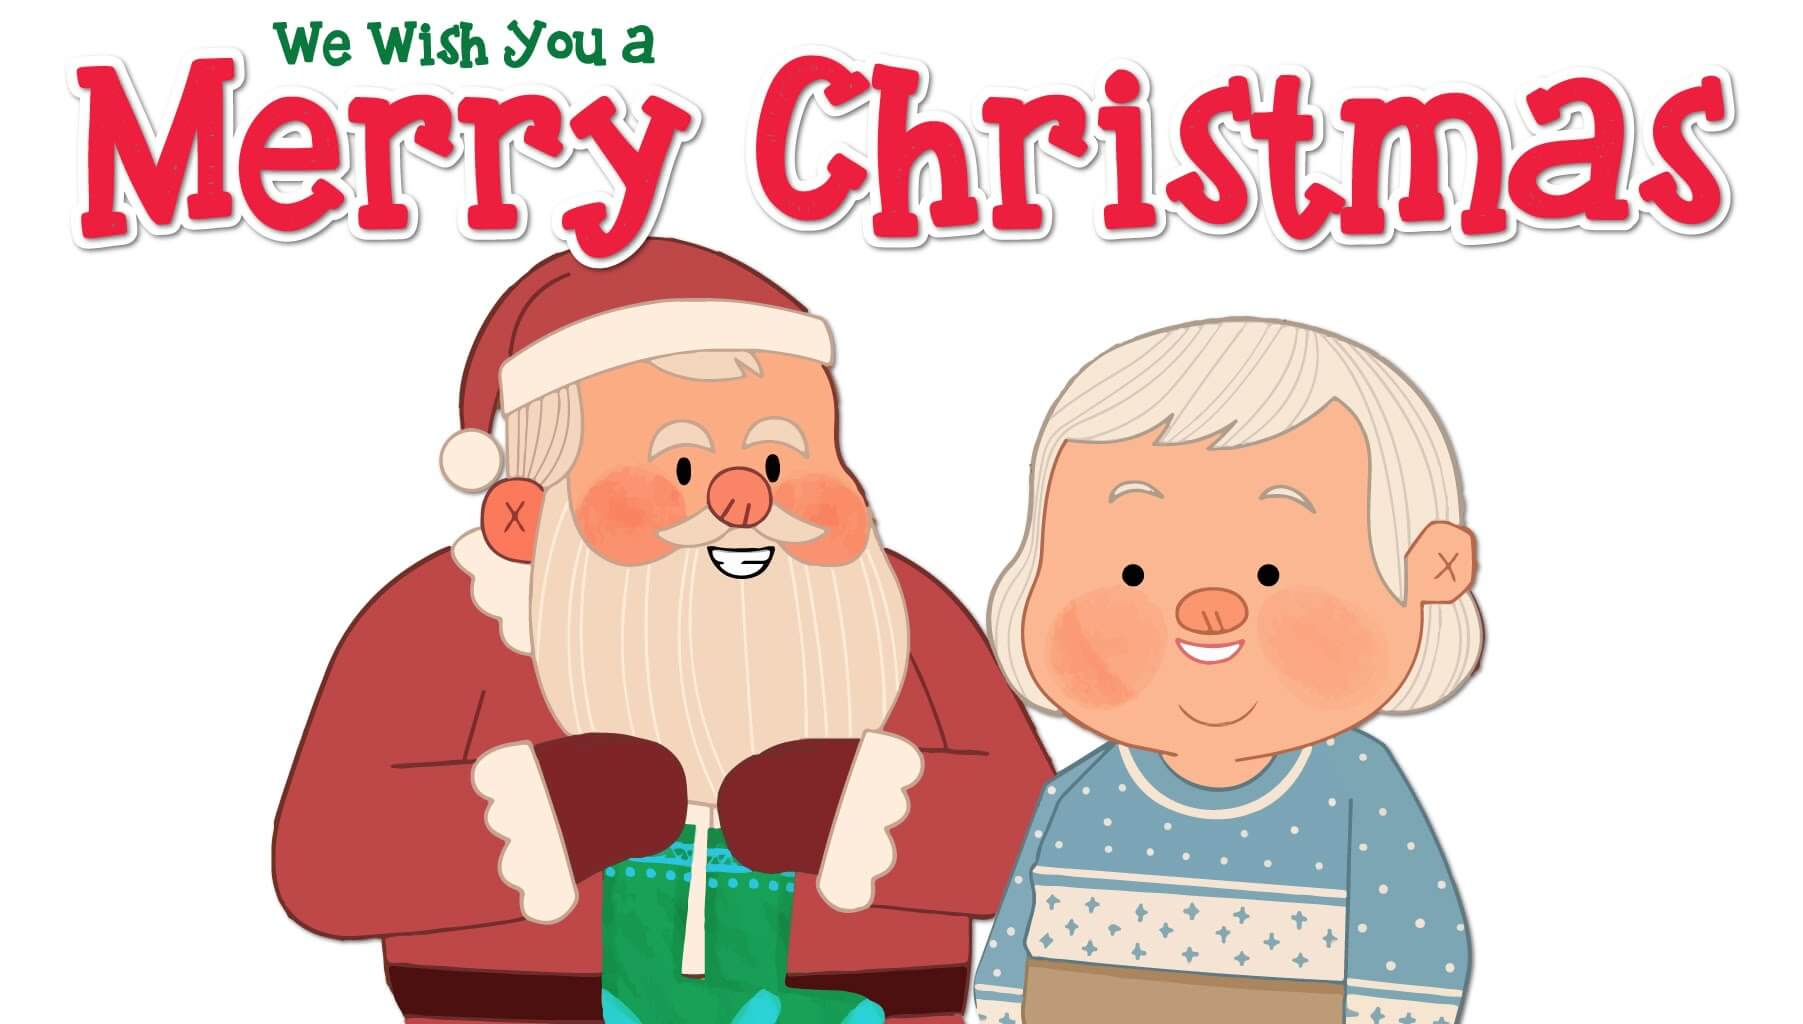 Wish You Merry Christmas Images